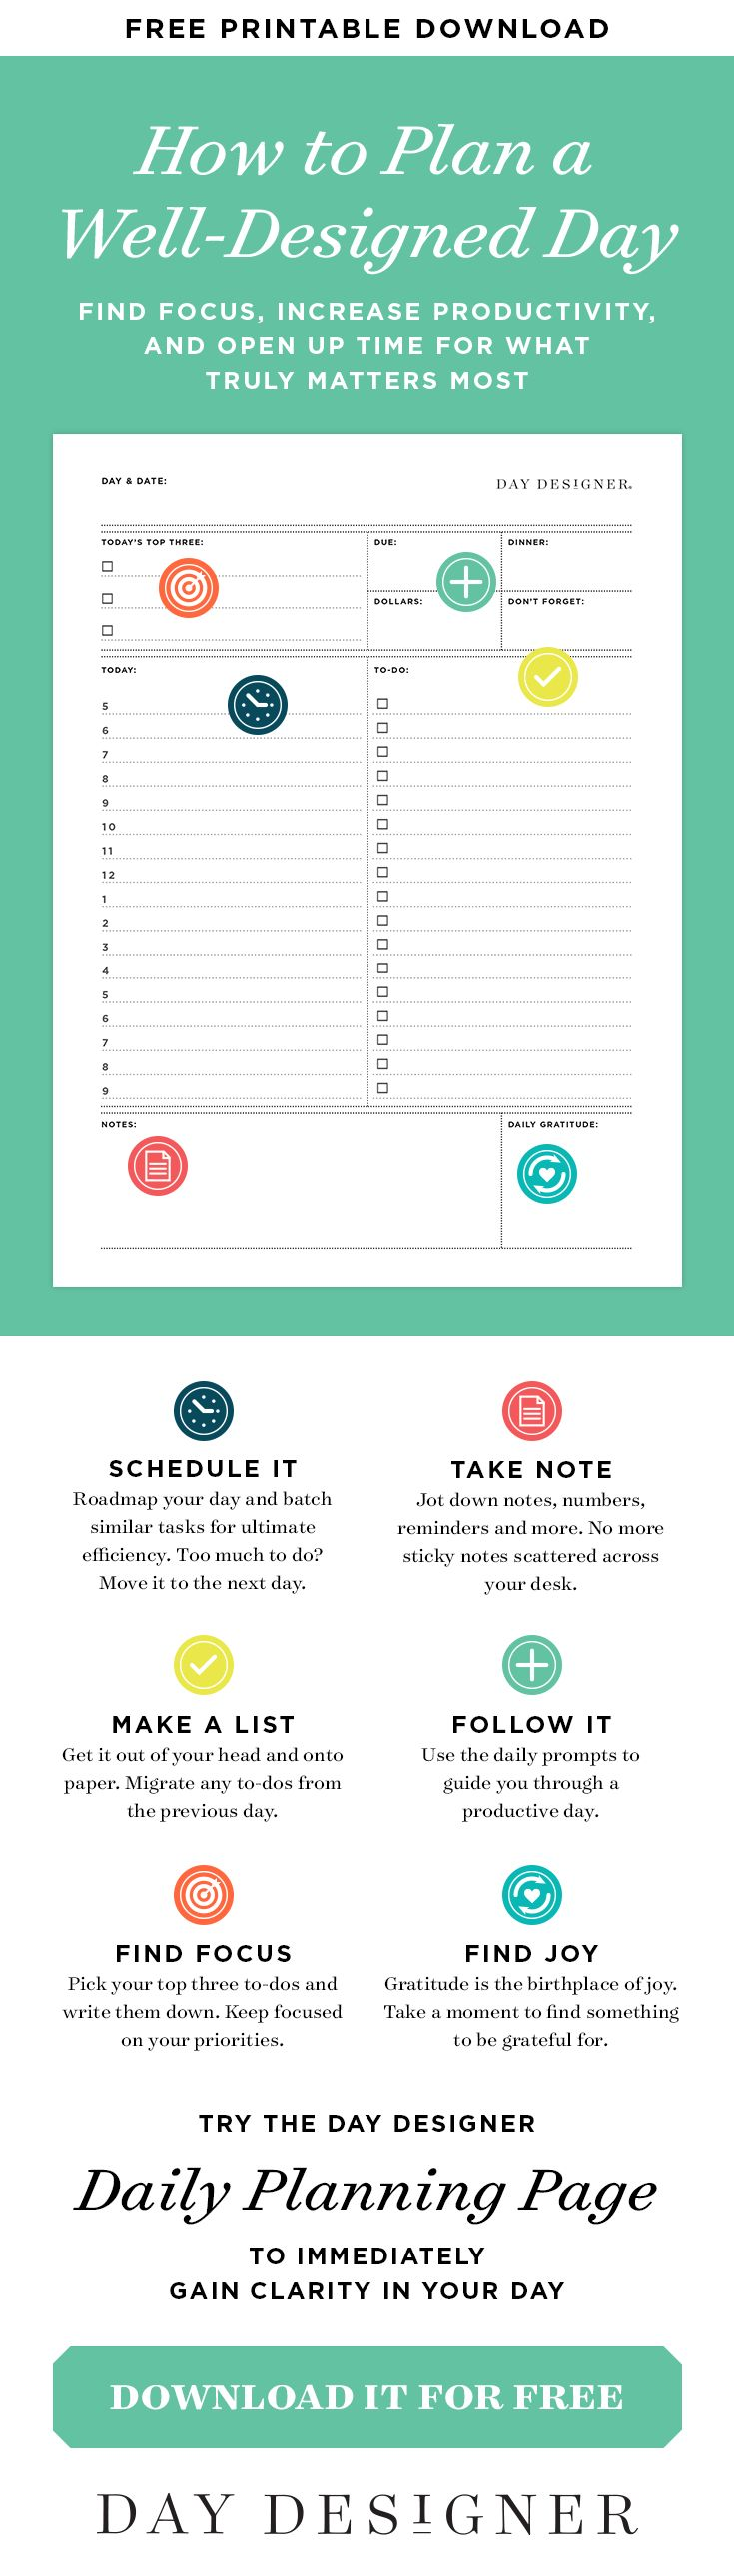 Find focus, increase productivity, and open up time for what truly matters most! Roadmap your day using helpful prompts on our signature daily planning page. | Day Designer—the strategic planner and daily agenda for living a well-designed life. #daydesigner